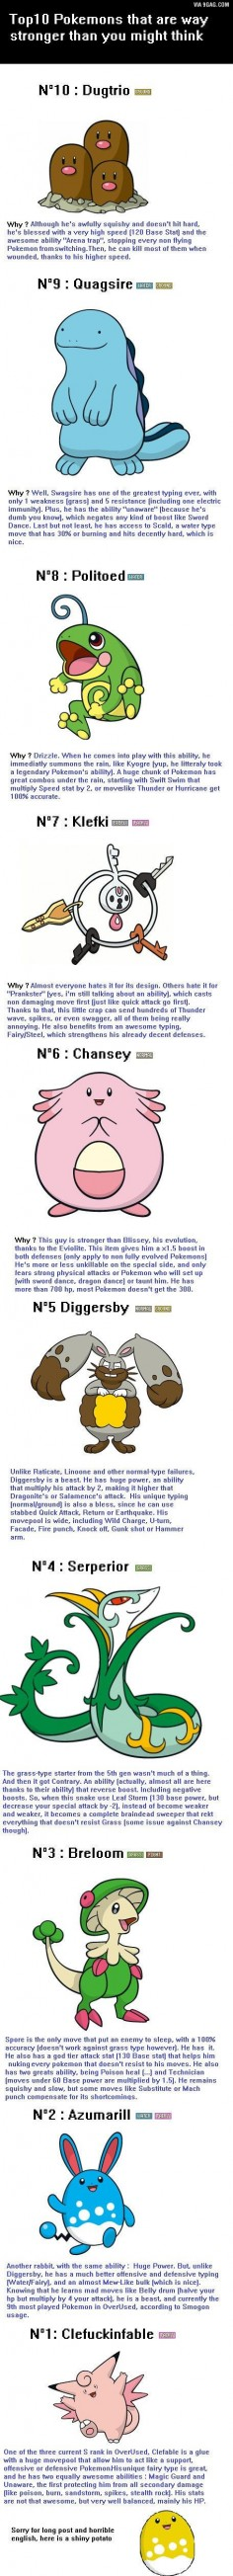 Top 10 Pokemons that are way stronger than you think